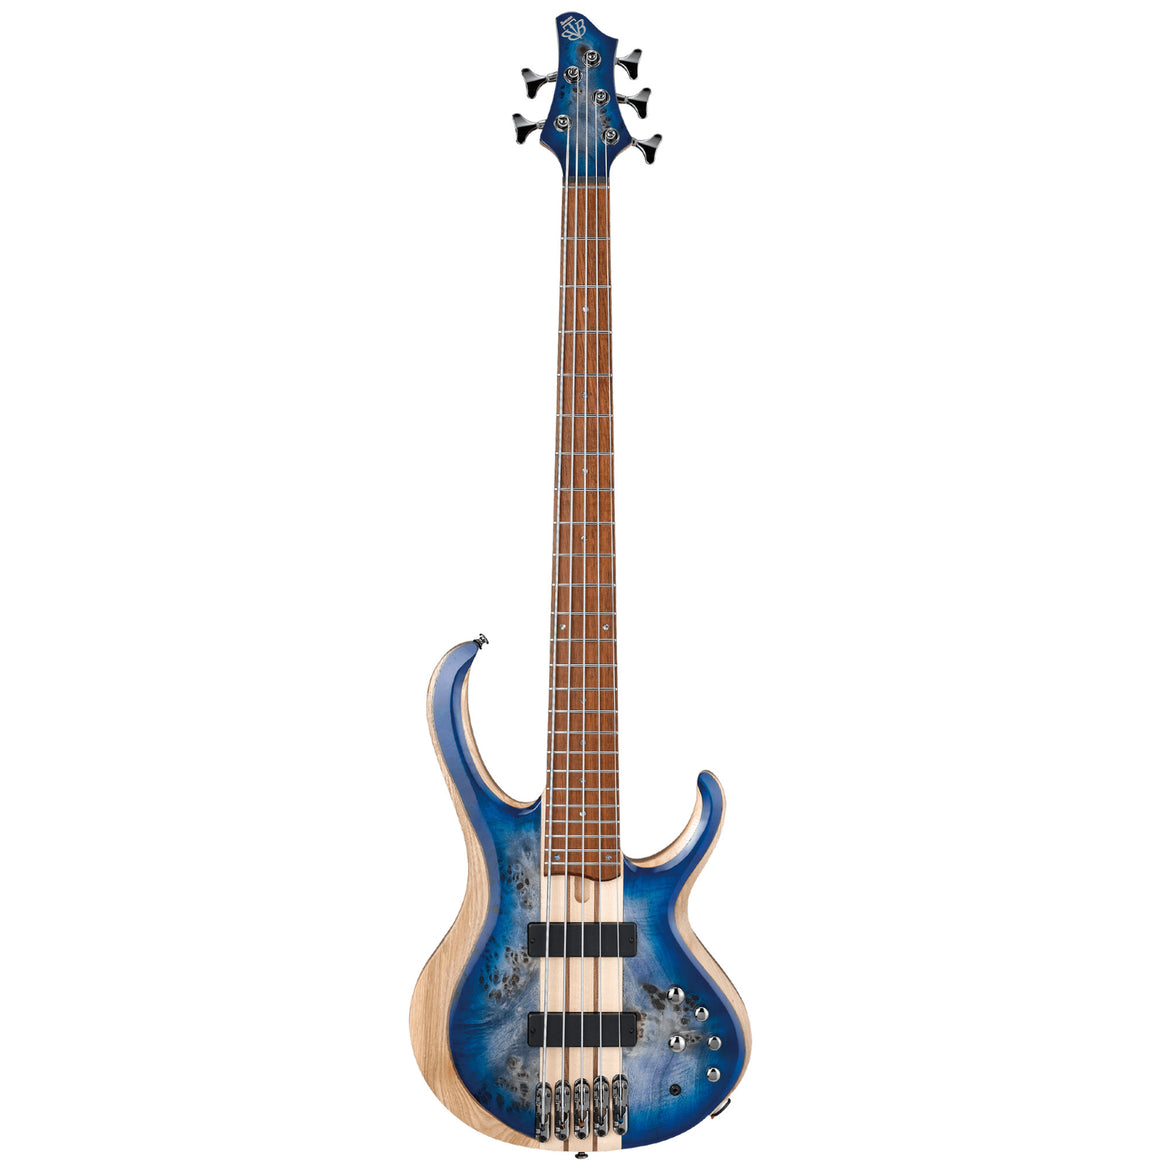 Ibanez BTB845 5-String Electric Bass - Cerulean Blue Burst